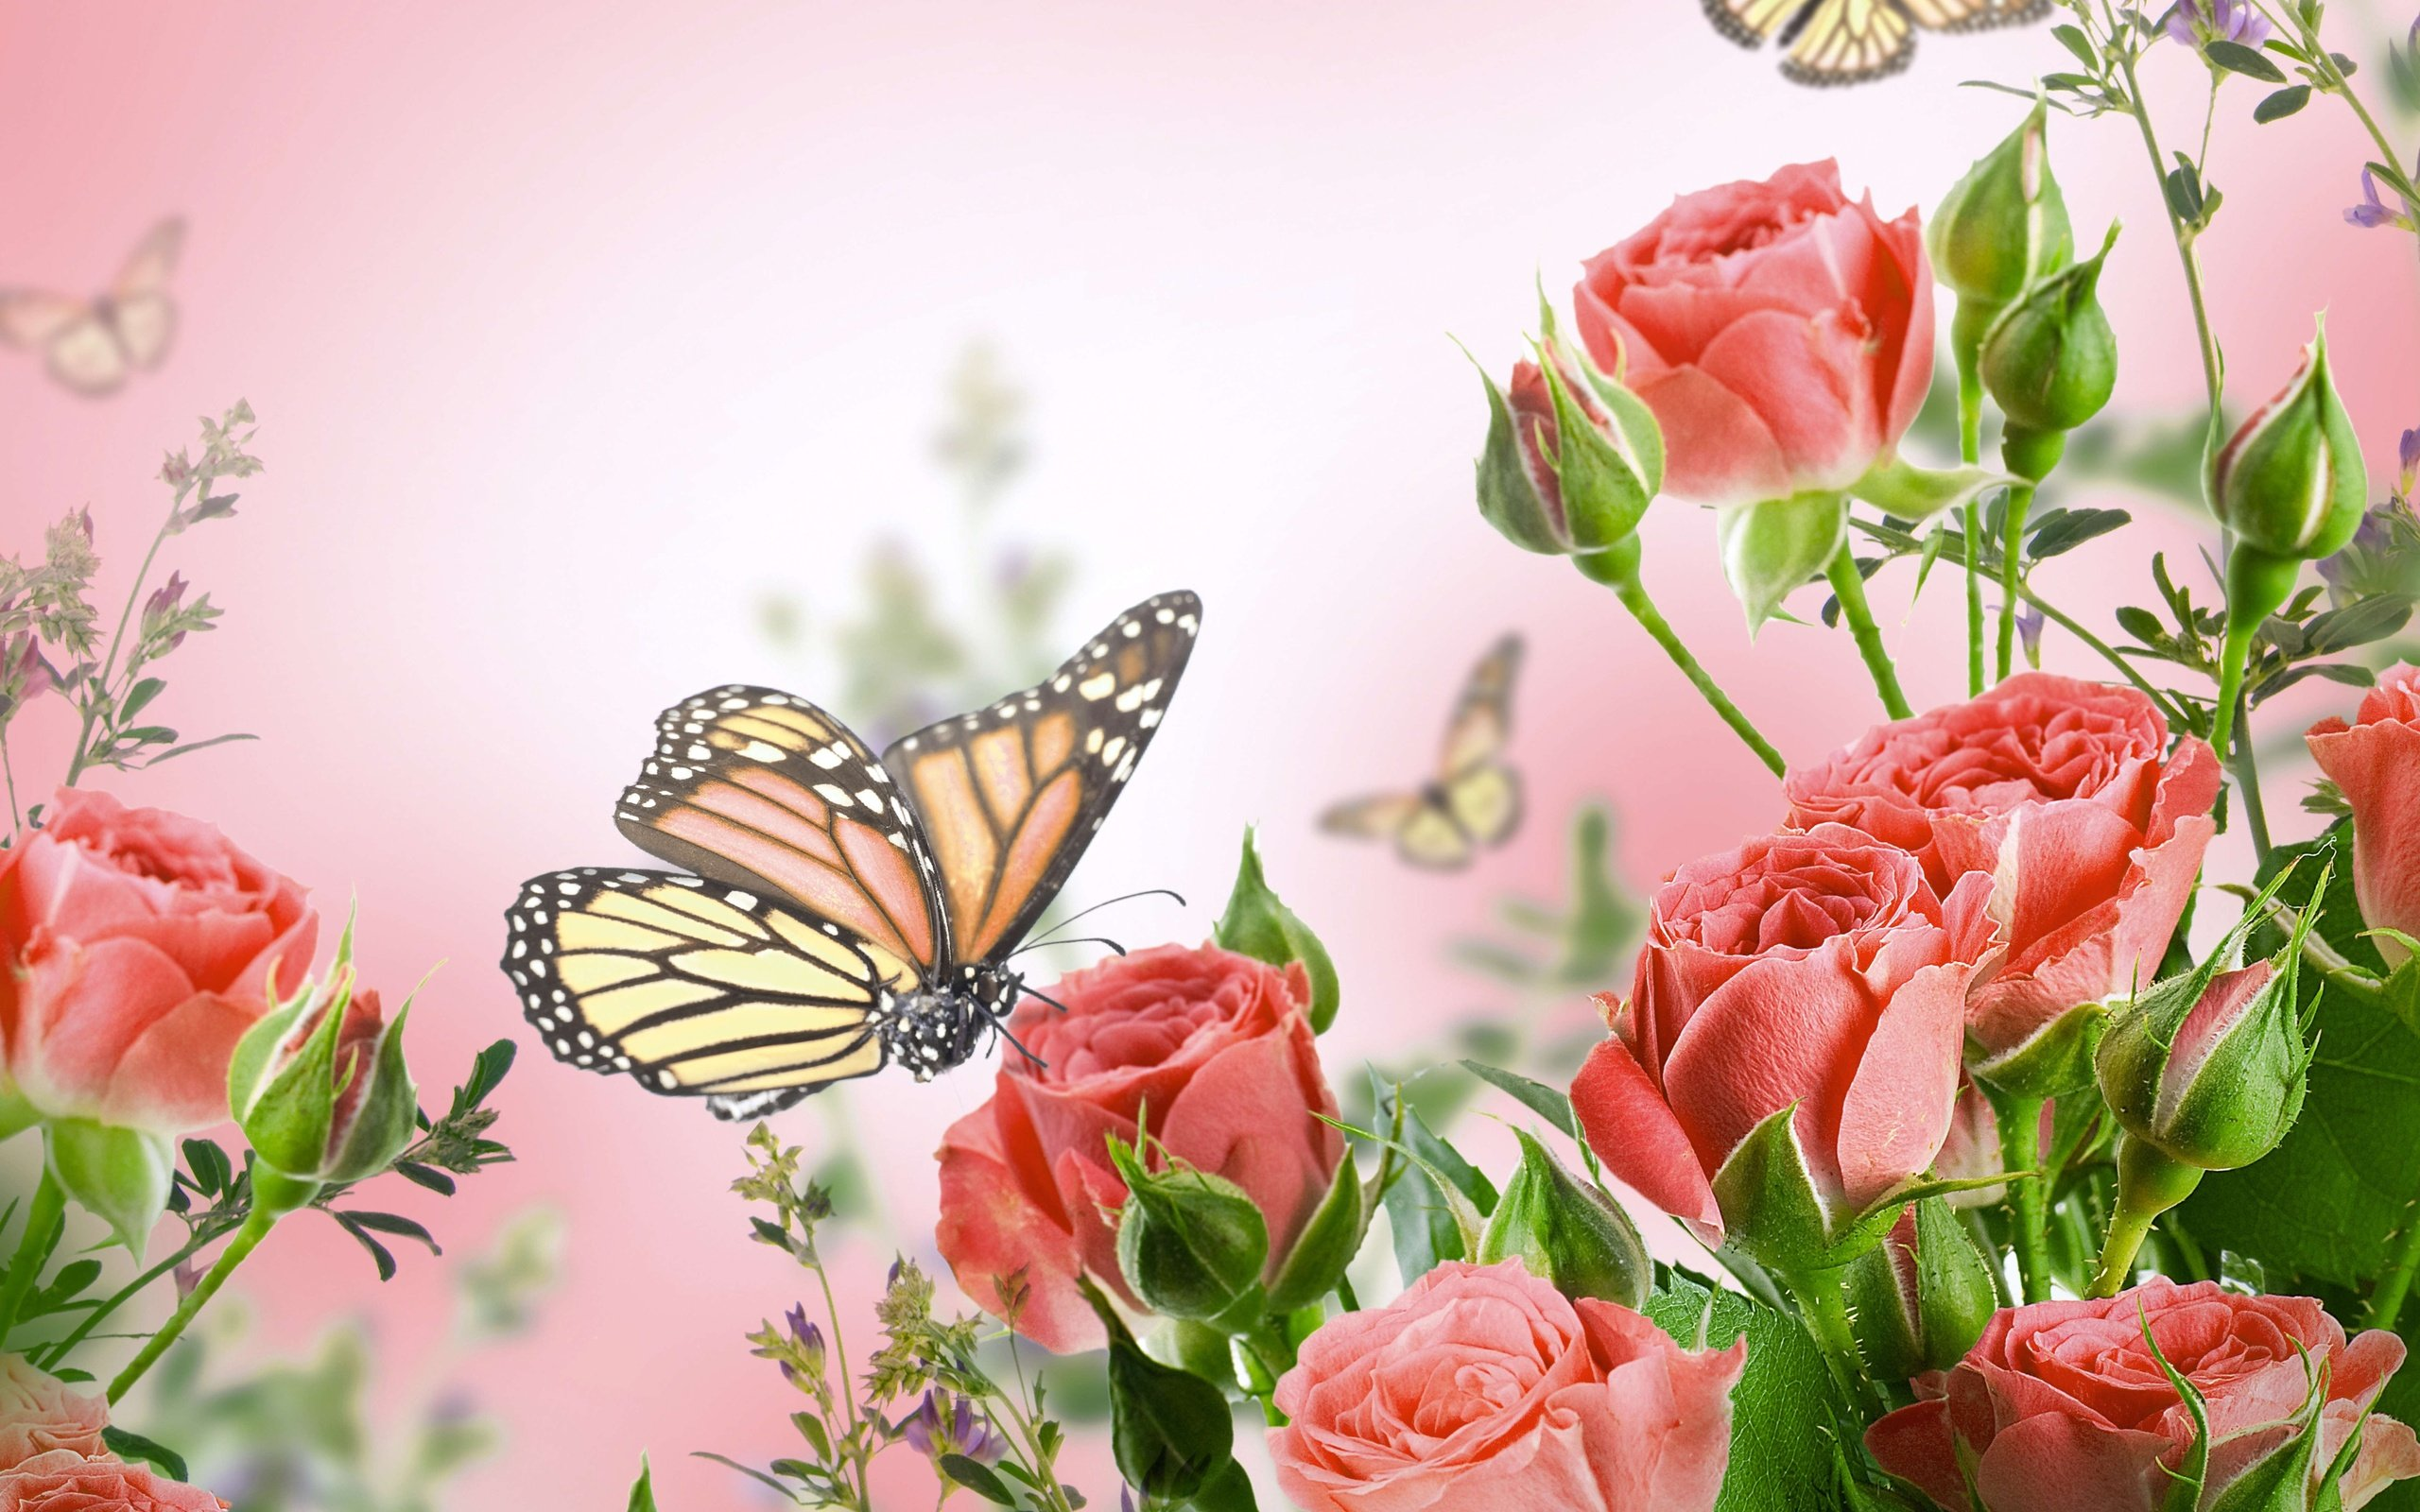 flowers and butterflies wallpaper - sf wallpaper